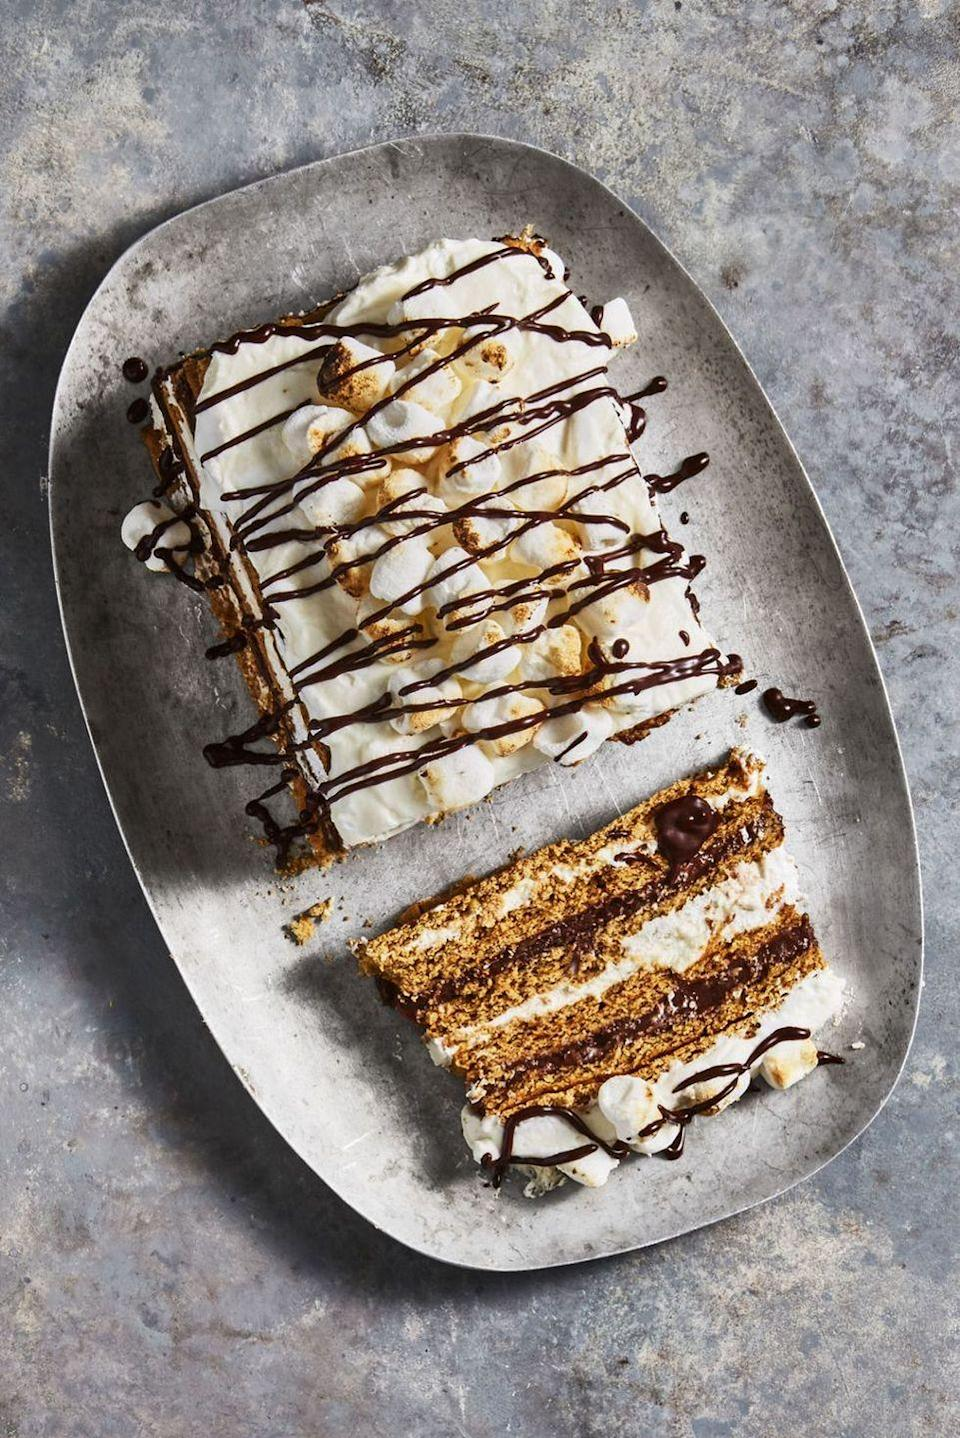 "<p>Missing summer? Us too. This <a href=""https://www.goodhousekeeping.com/food-recipes/dessert/g838/no-bake-desserts/"" rel=""nofollow noopener"" target=""_blank"" data-ylk=""slk:no-bake cake"" class=""link rapid-noclick-resp"">no-bake cake</a> stacked with layers of grahams, chocolate, and marshmallow brings the flavors of the campfire inside for fall.</p><p><em><a href=""https://www.goodhousekeeping.com/food-recipes/dessert/a45720/smores-icebox-cake-recipe/"" rel=""nofollow noopener"" target=""_blank"" data-ylk=""slk:Get the recipe for S'mores Icebox Cake »"" class=""link rapid-noclick-resp"">Get the recipe for S'mores Icebox Cake »</a></em> </p>"